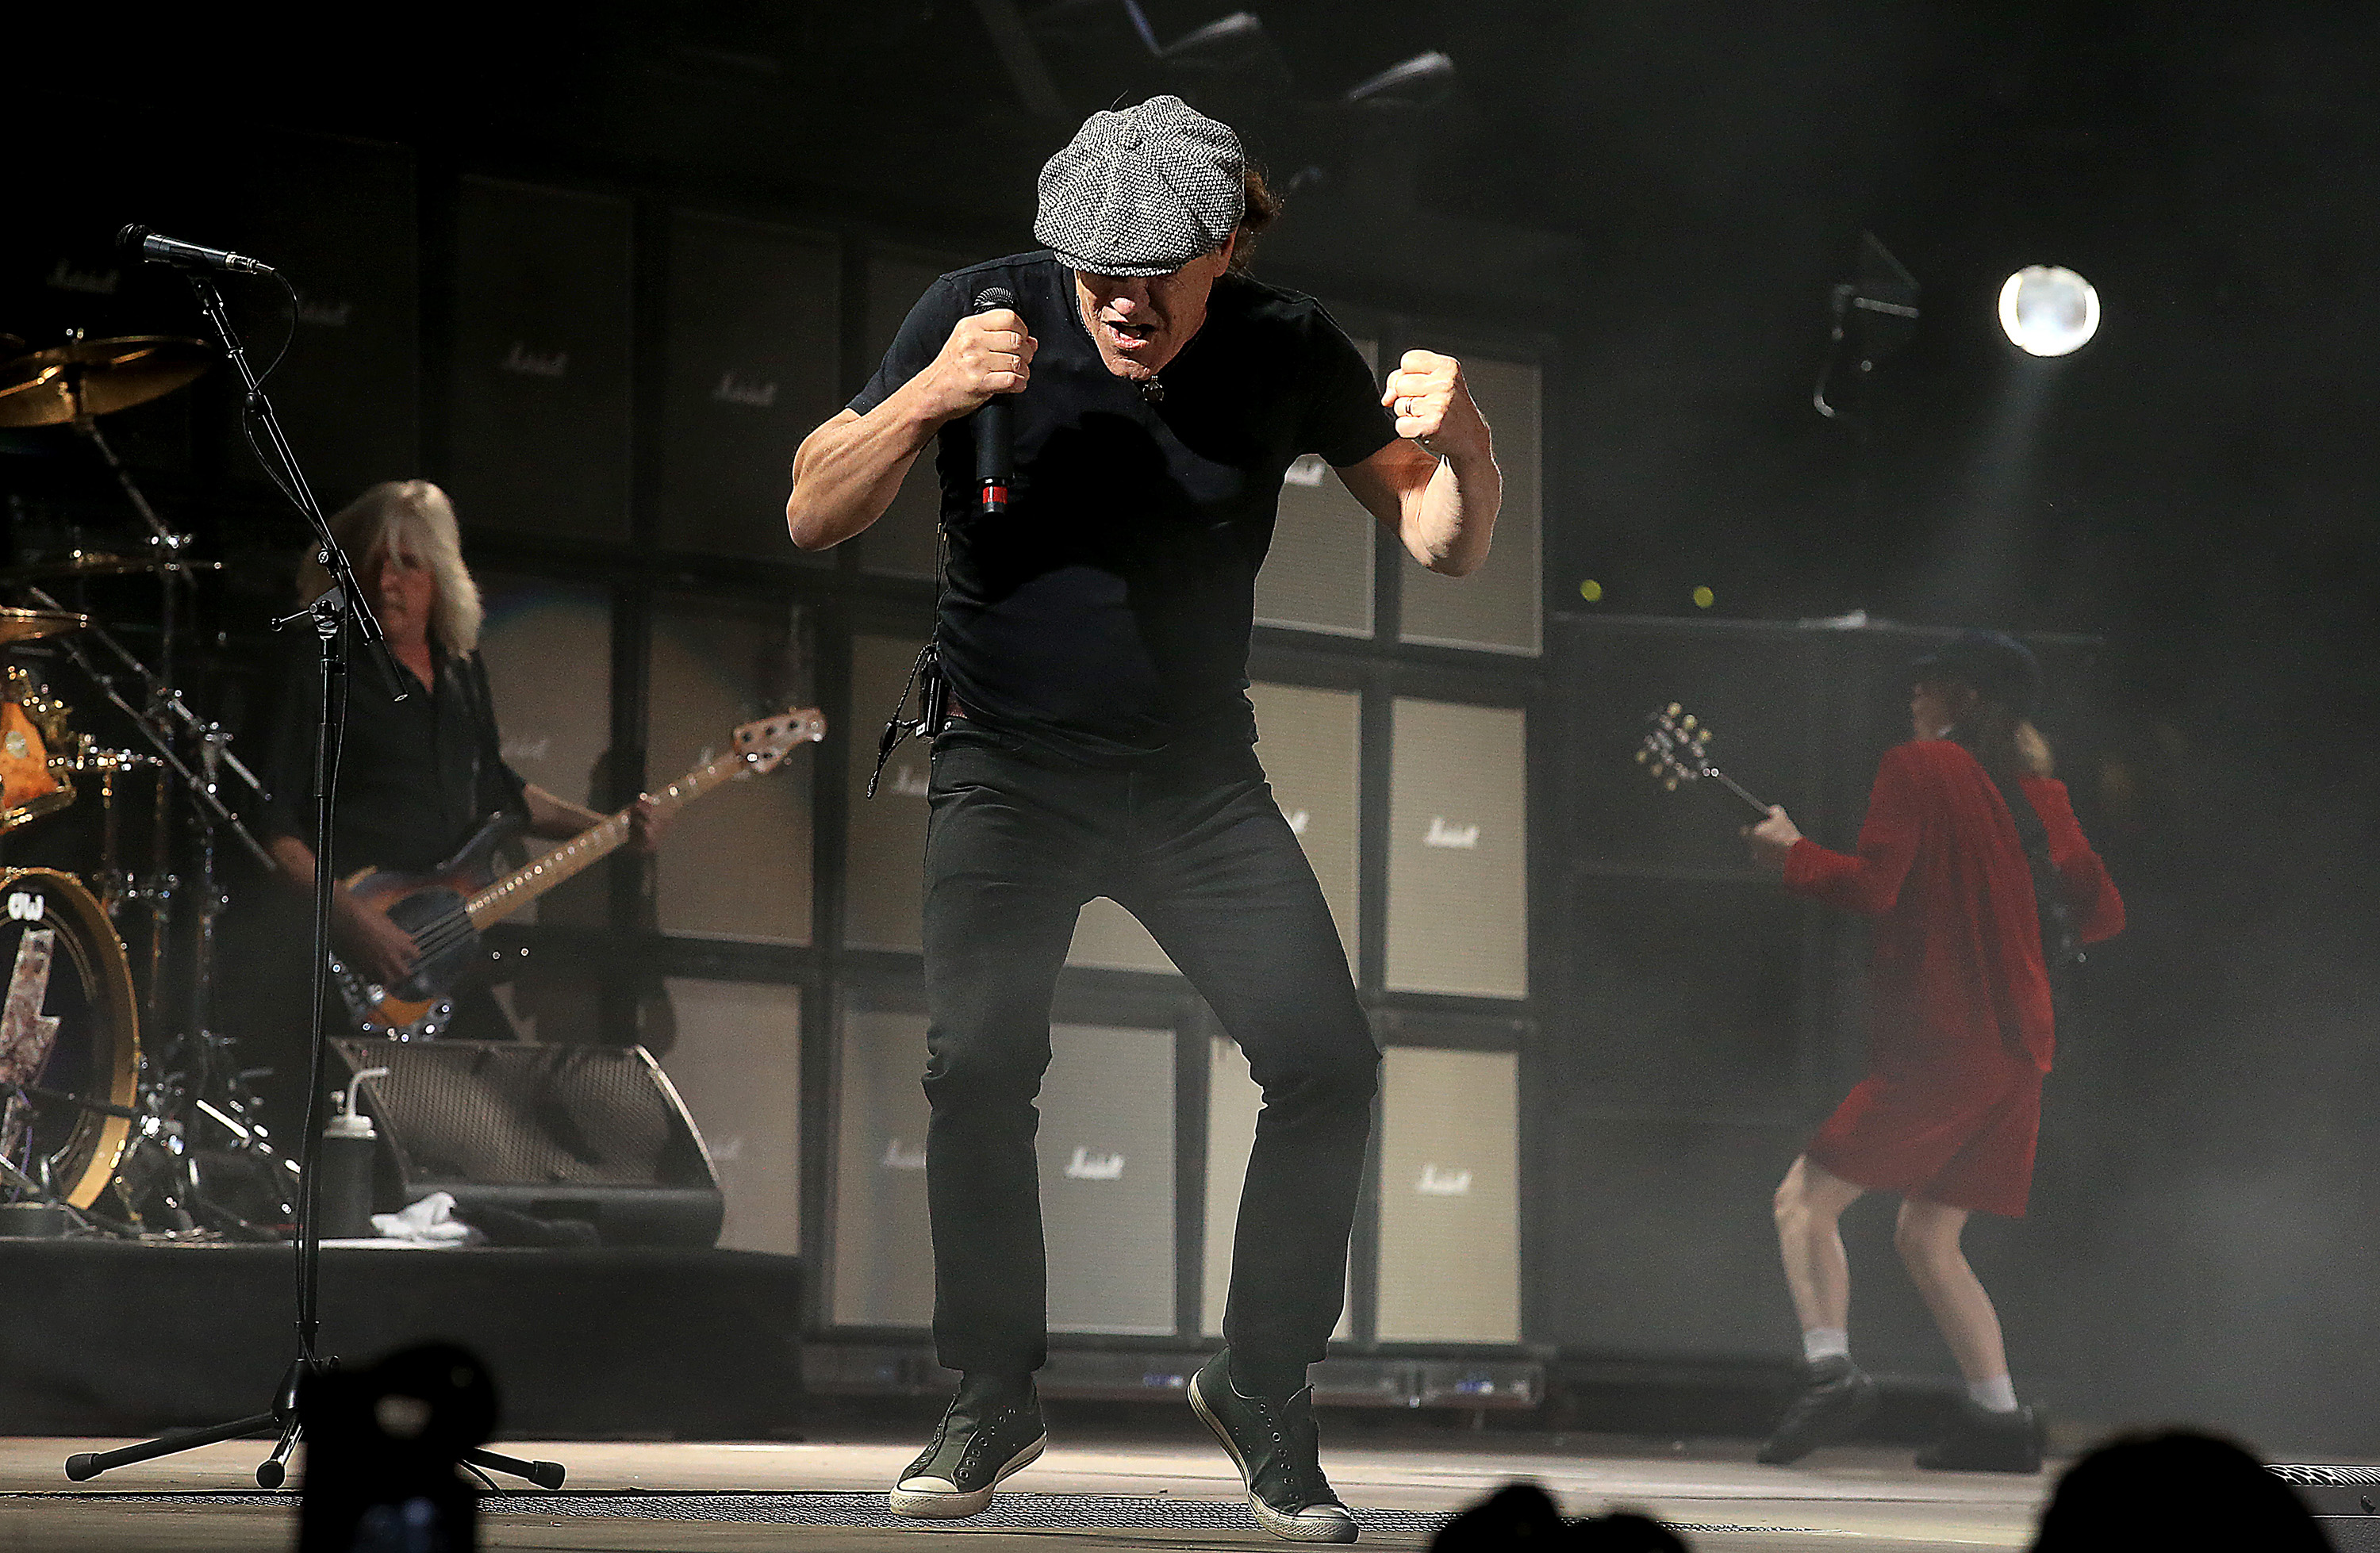 Brian Johnson, lead singer of the heavy metal band AC/DC, performs on Day 1 of the Coachella Valley Music and Arts Festival at the Empire Polo Grounds in Indio, Calif., on Friday, April 10, 2015. (Luis Sinco/Los Angeles Times/TNS)